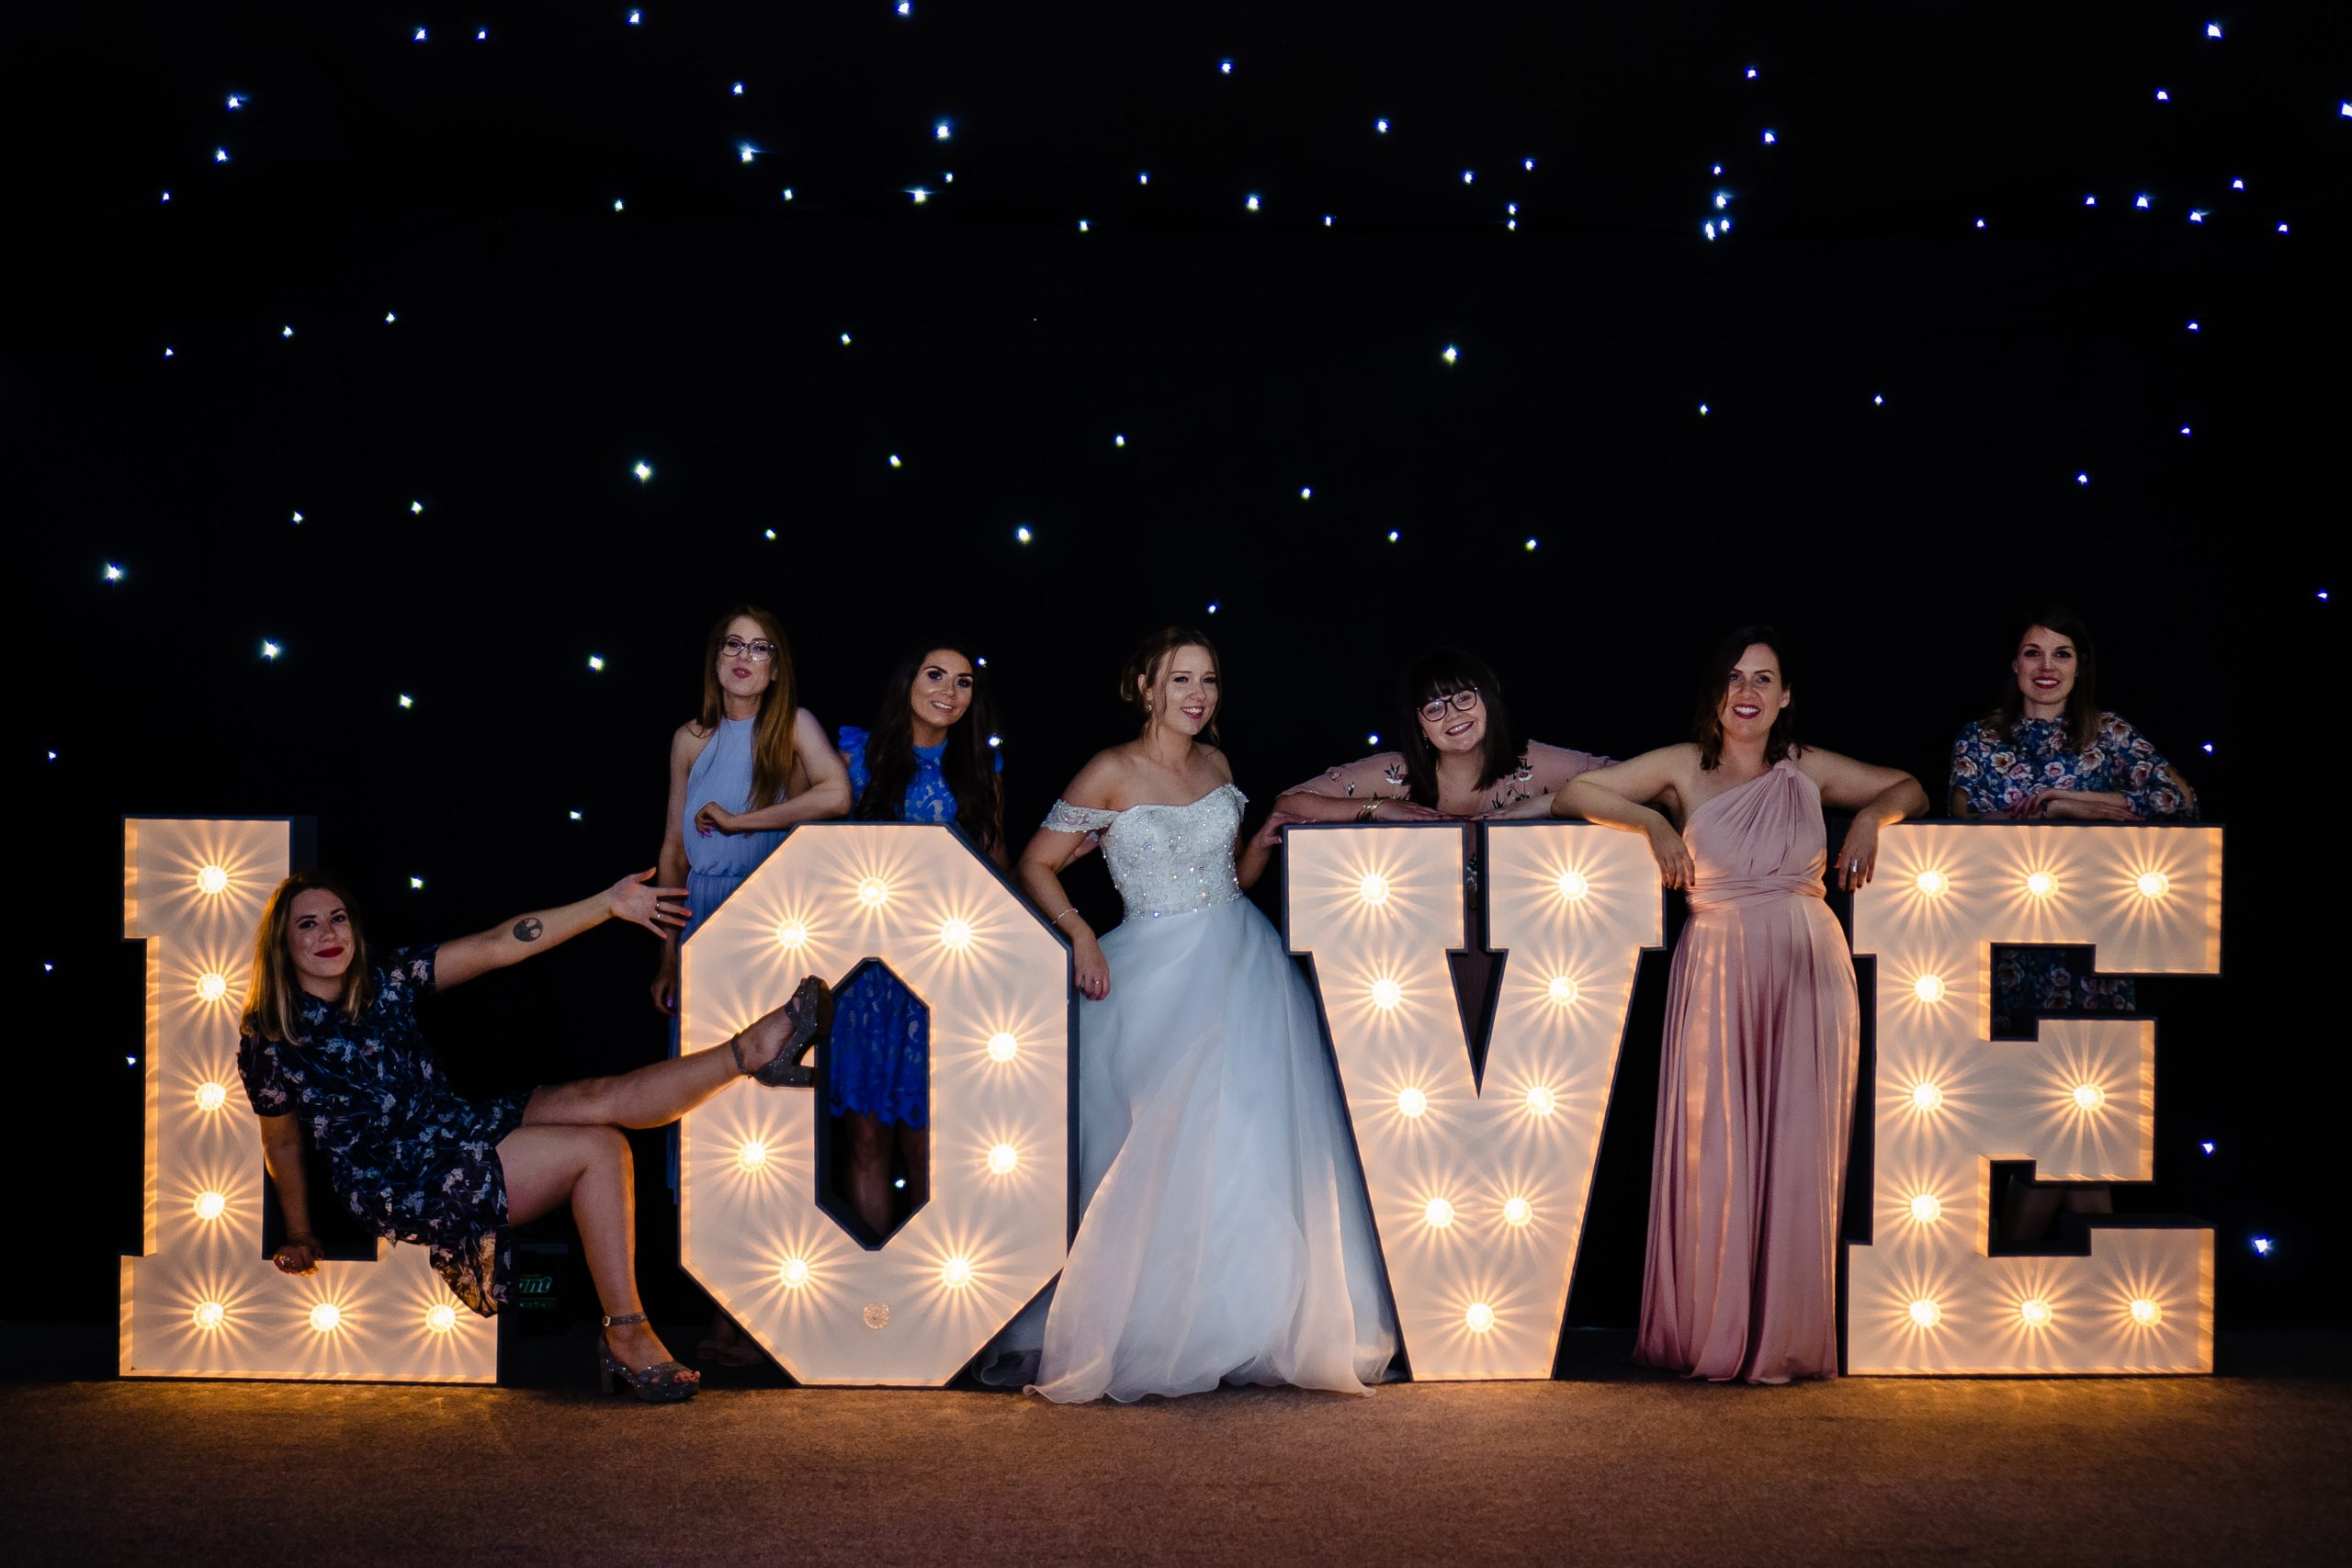 Bridal party pictures in tipi